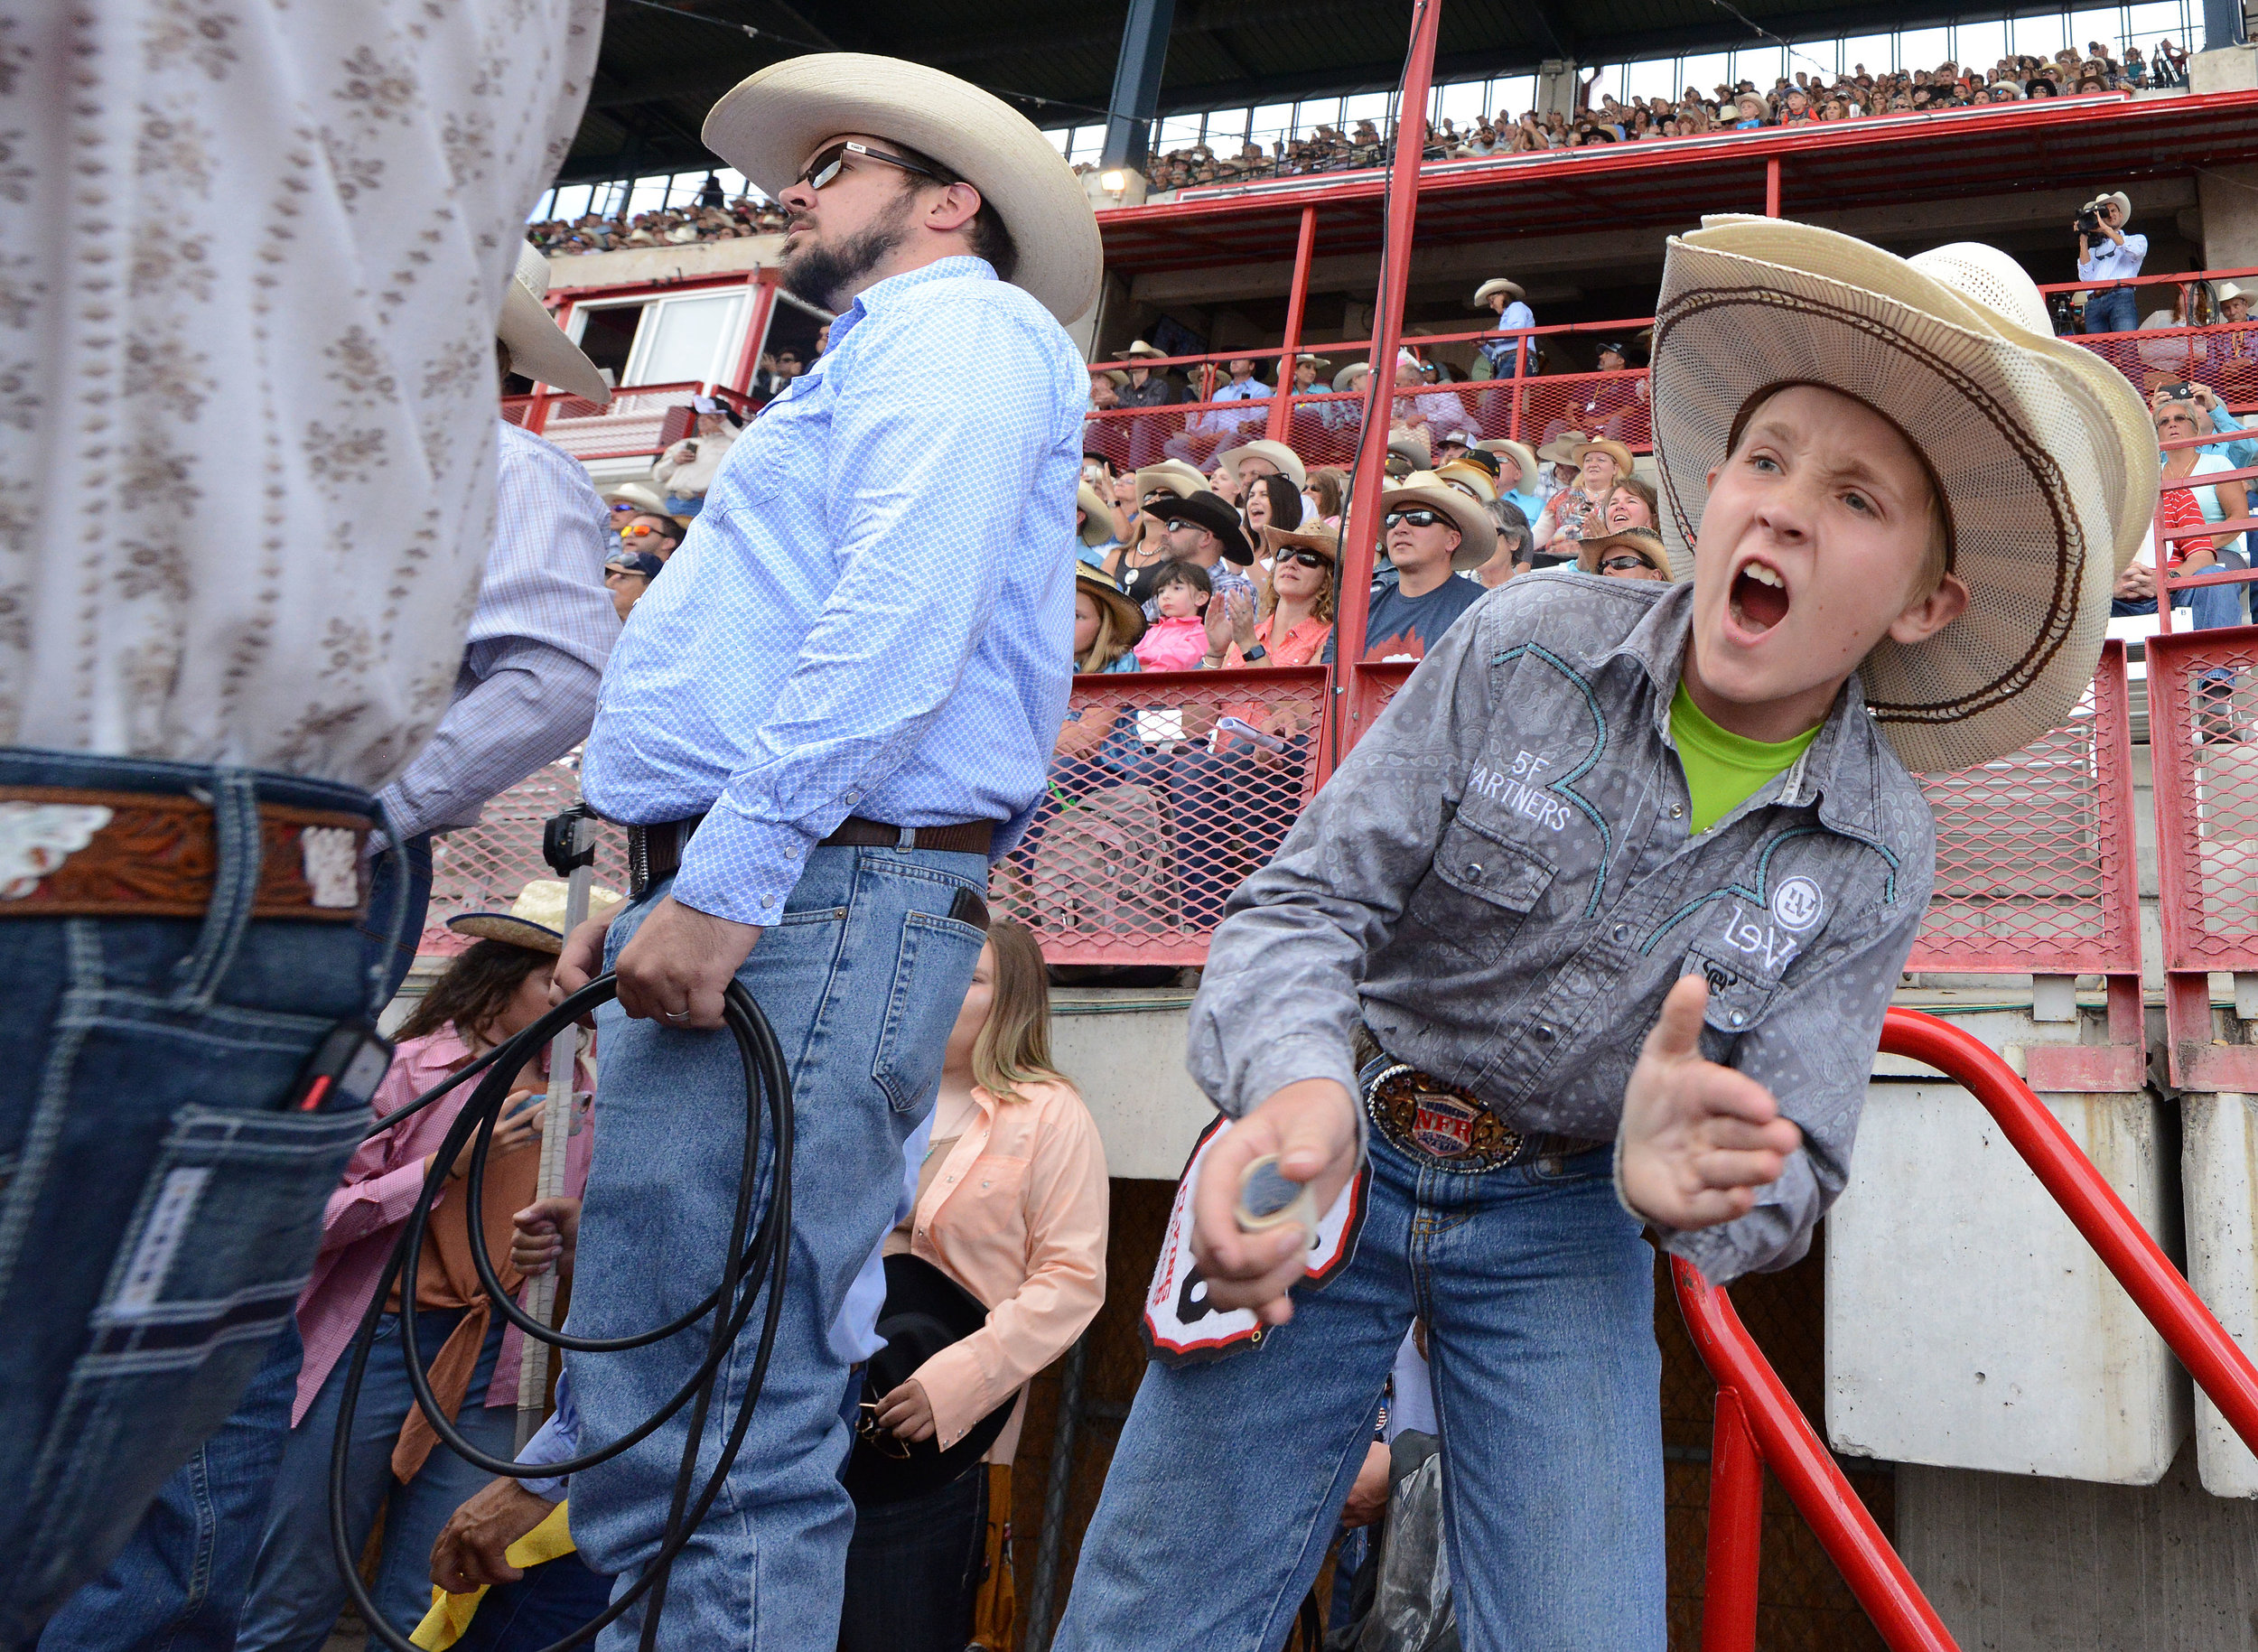 A young mini bull rider cheers on a contestant during the 6th performance at the 122nd Cheyenne Frontier Days Rodeo at Frontier Park in Cheyenne, Wyoming Wednesday, July 25, 2018.